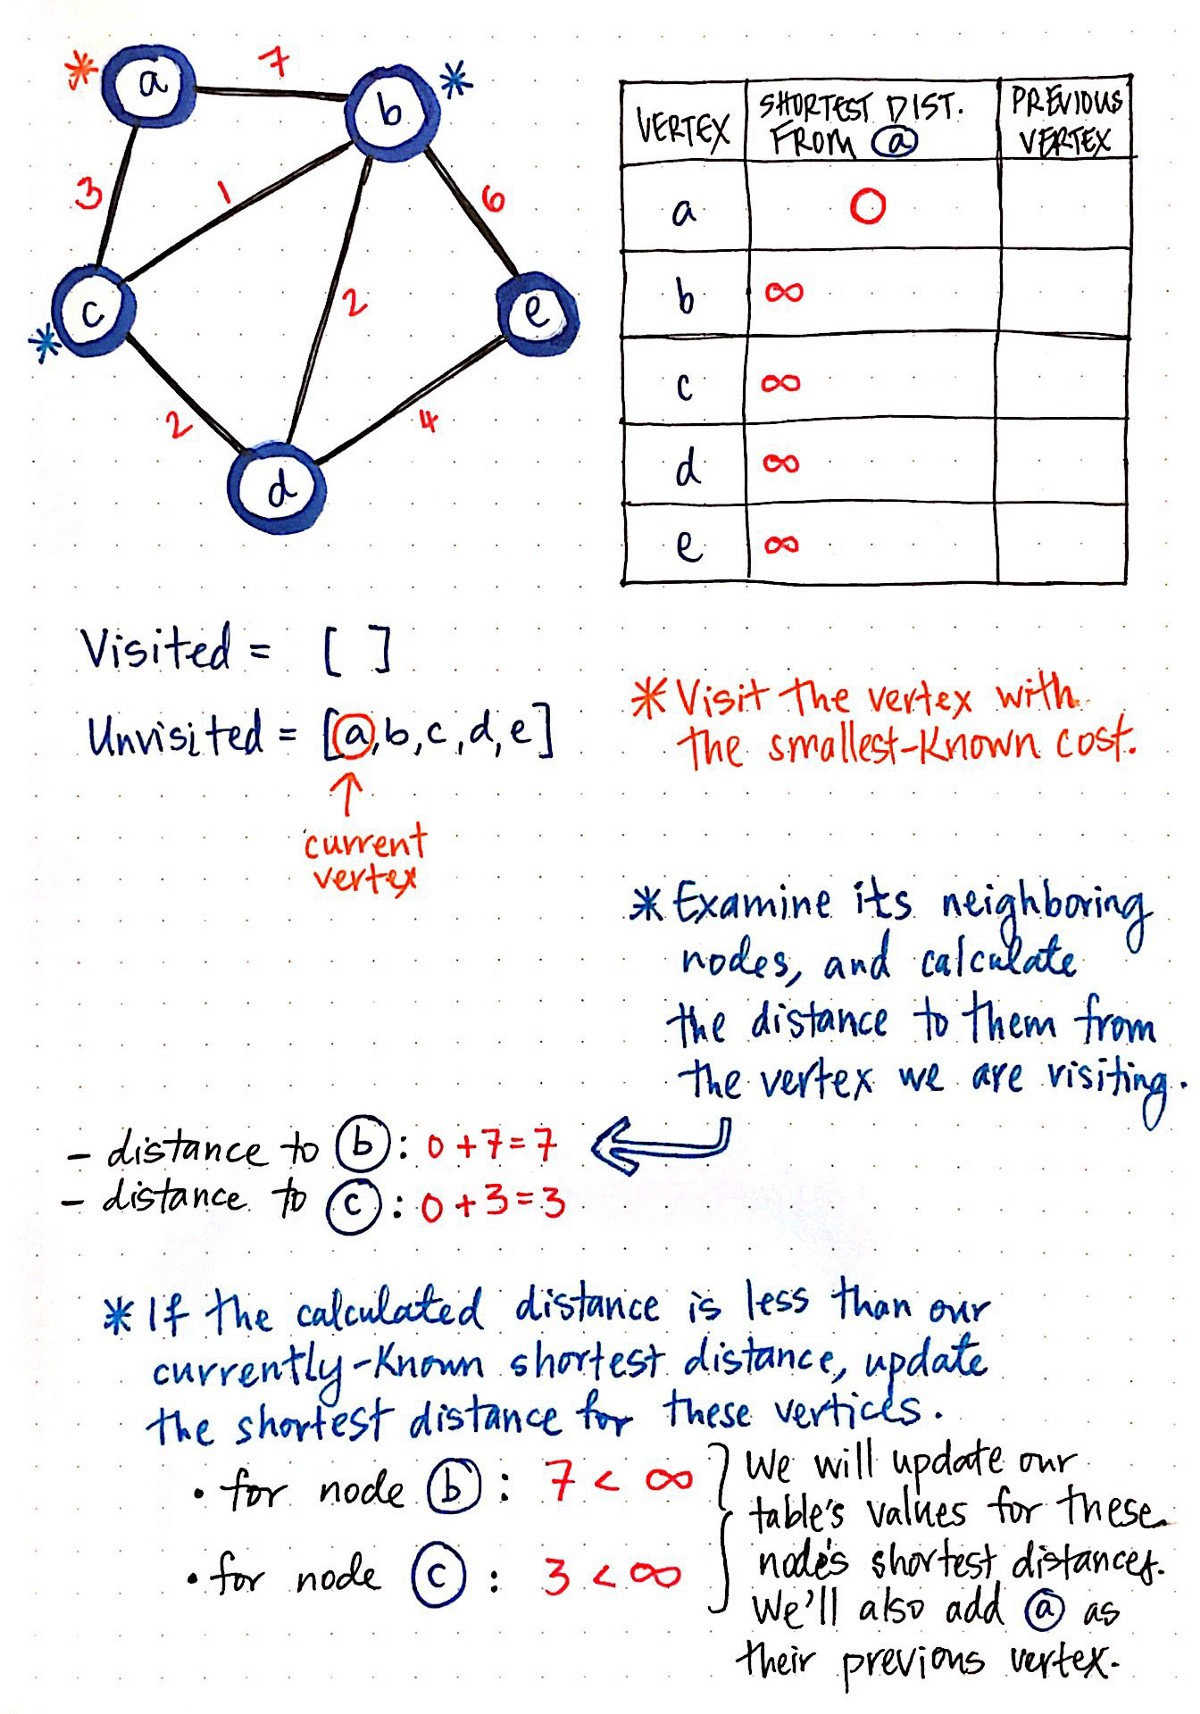 Finding The Shortest Path With A Little Help From Dijkstra Im Solving Circuit Nodal Analysis And Following Steps Of Dijkstras Algorithm Part 2